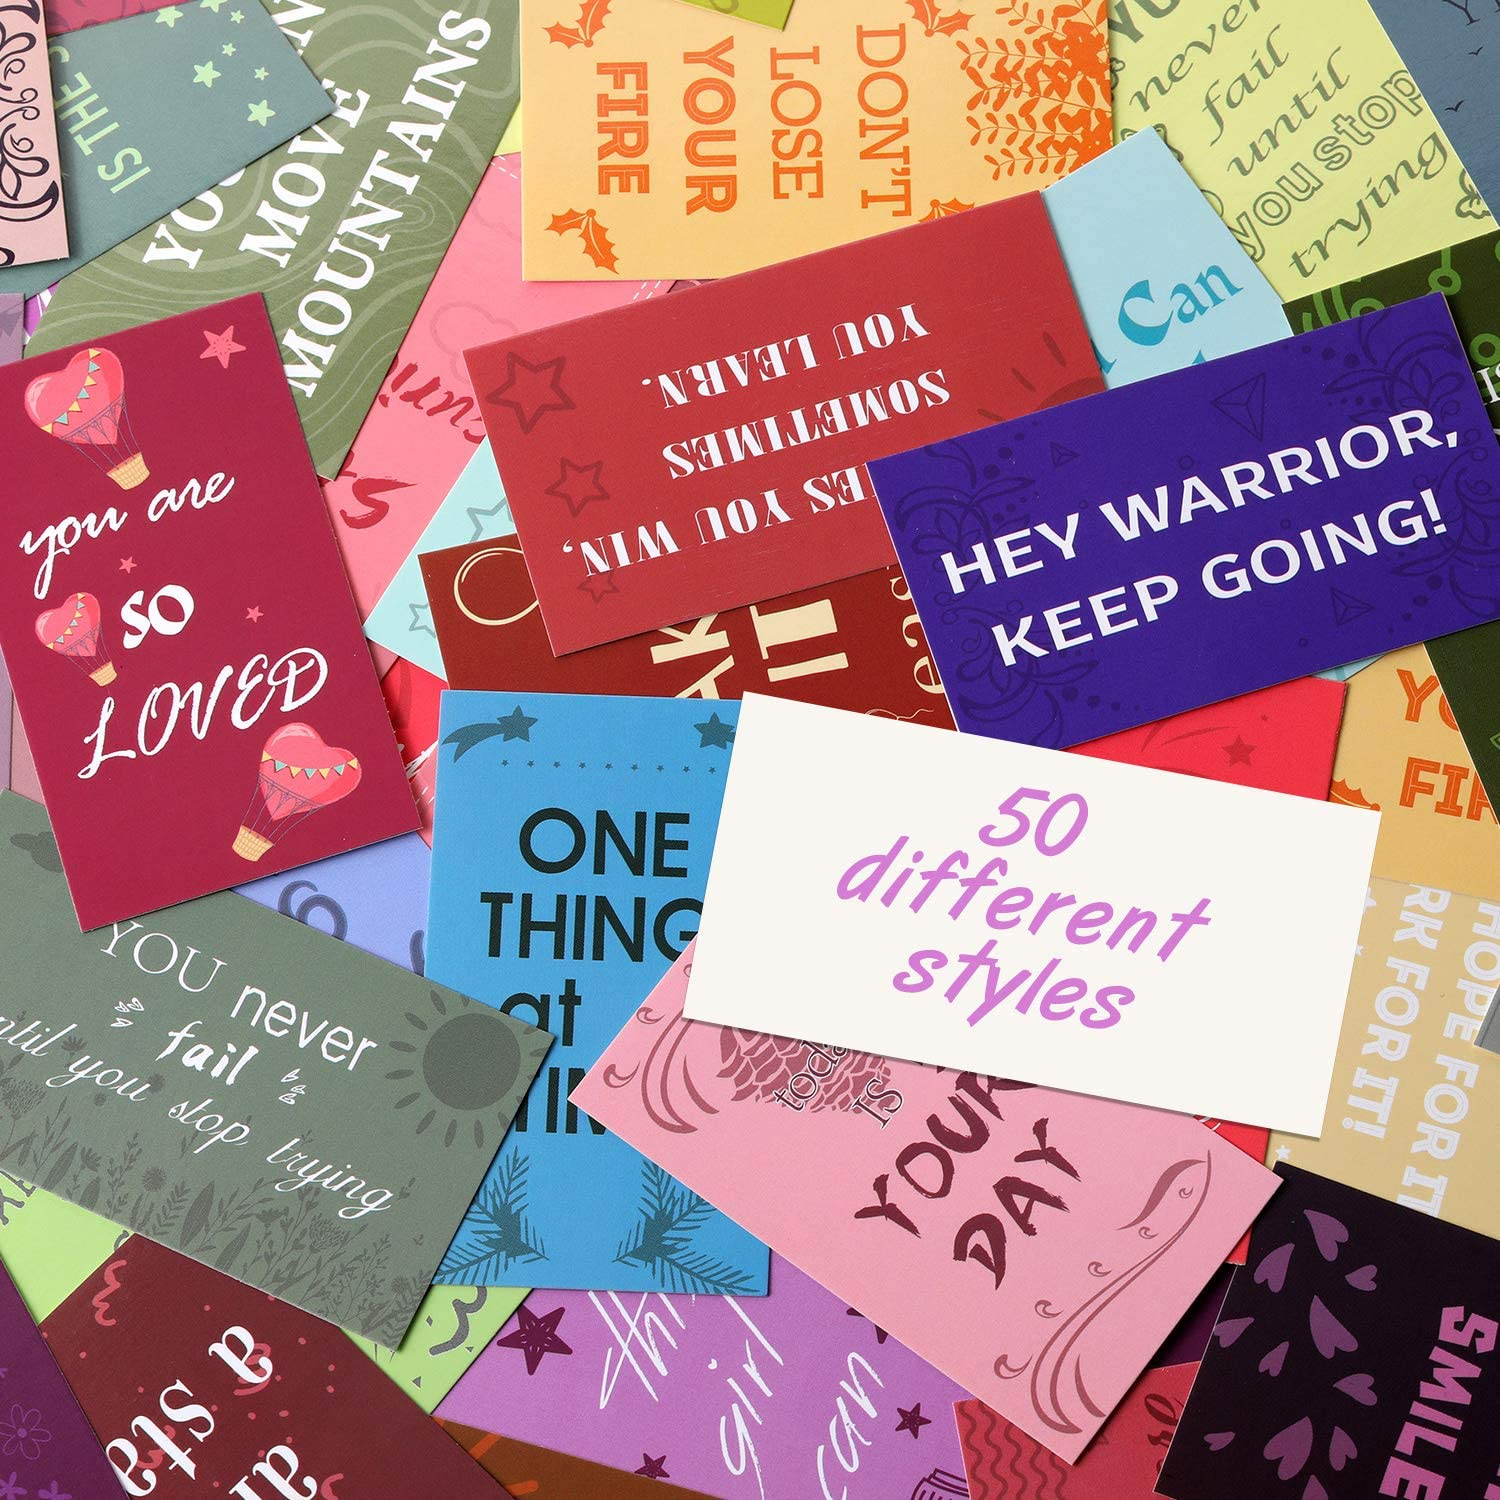 100 Pieces Motivational Quote Cards Assorted Inspirational Cards Mini Encouragement Cards Positivity Cards Business Card Size for Appreciation Gratitude